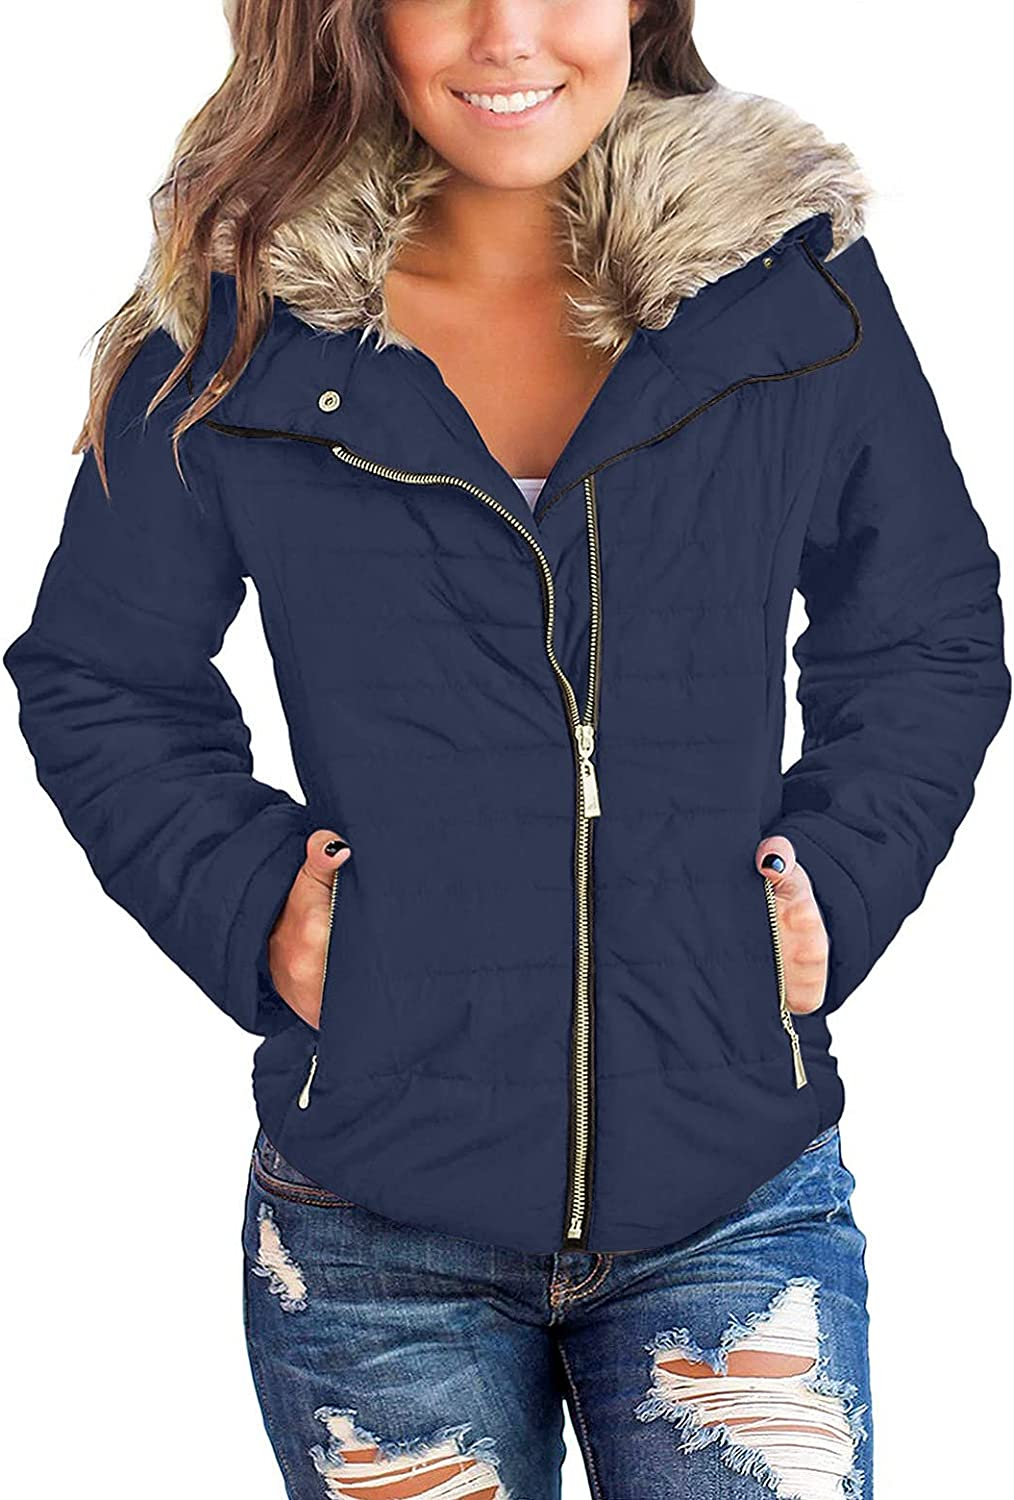 GRAPENT Women's Casual Faux Fur Jacket Zip Pockets Quilted Colorado Springs Mall mart Lapel